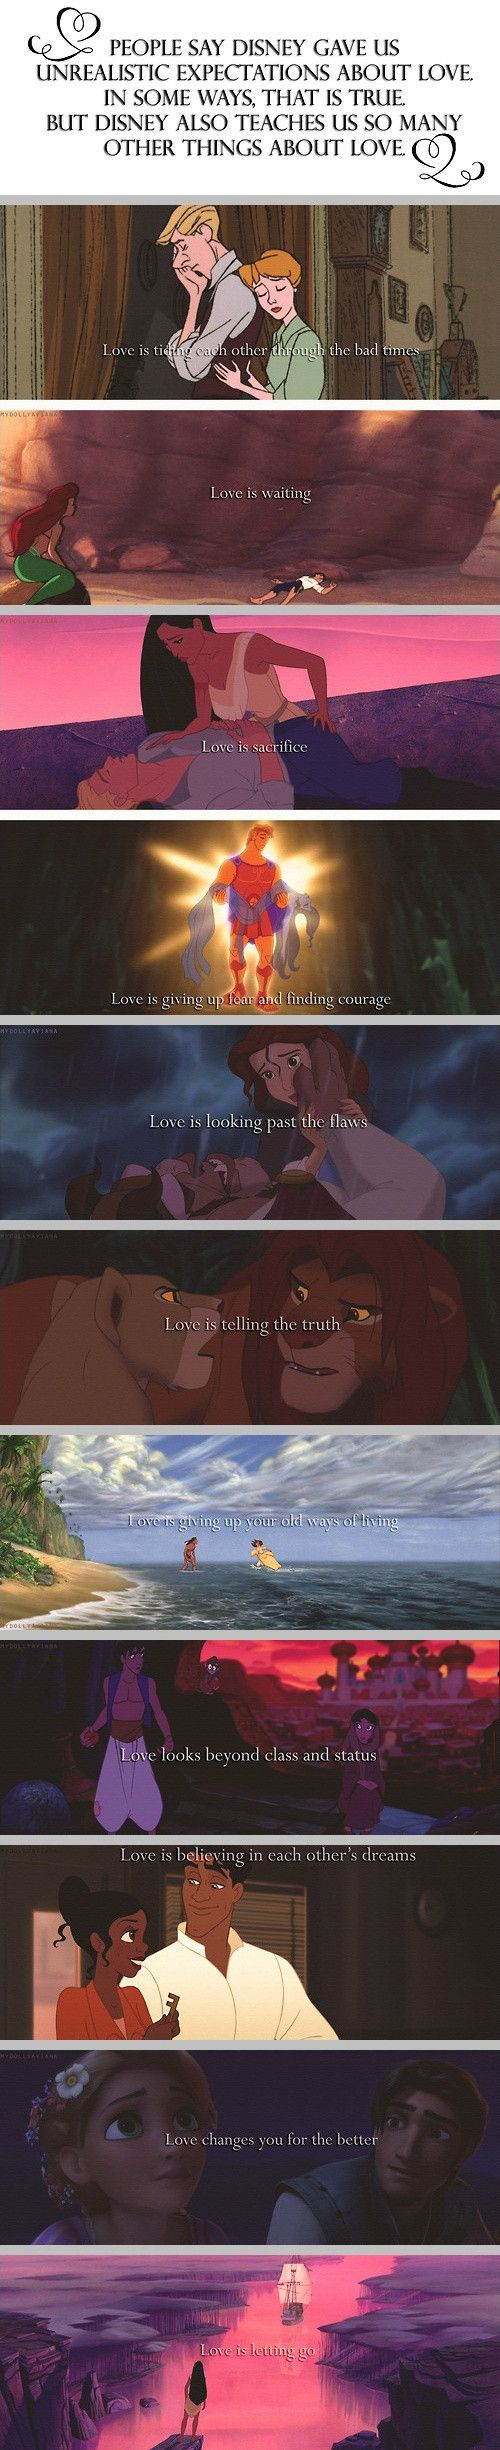 Love defined by Disney...this is beautiful♥